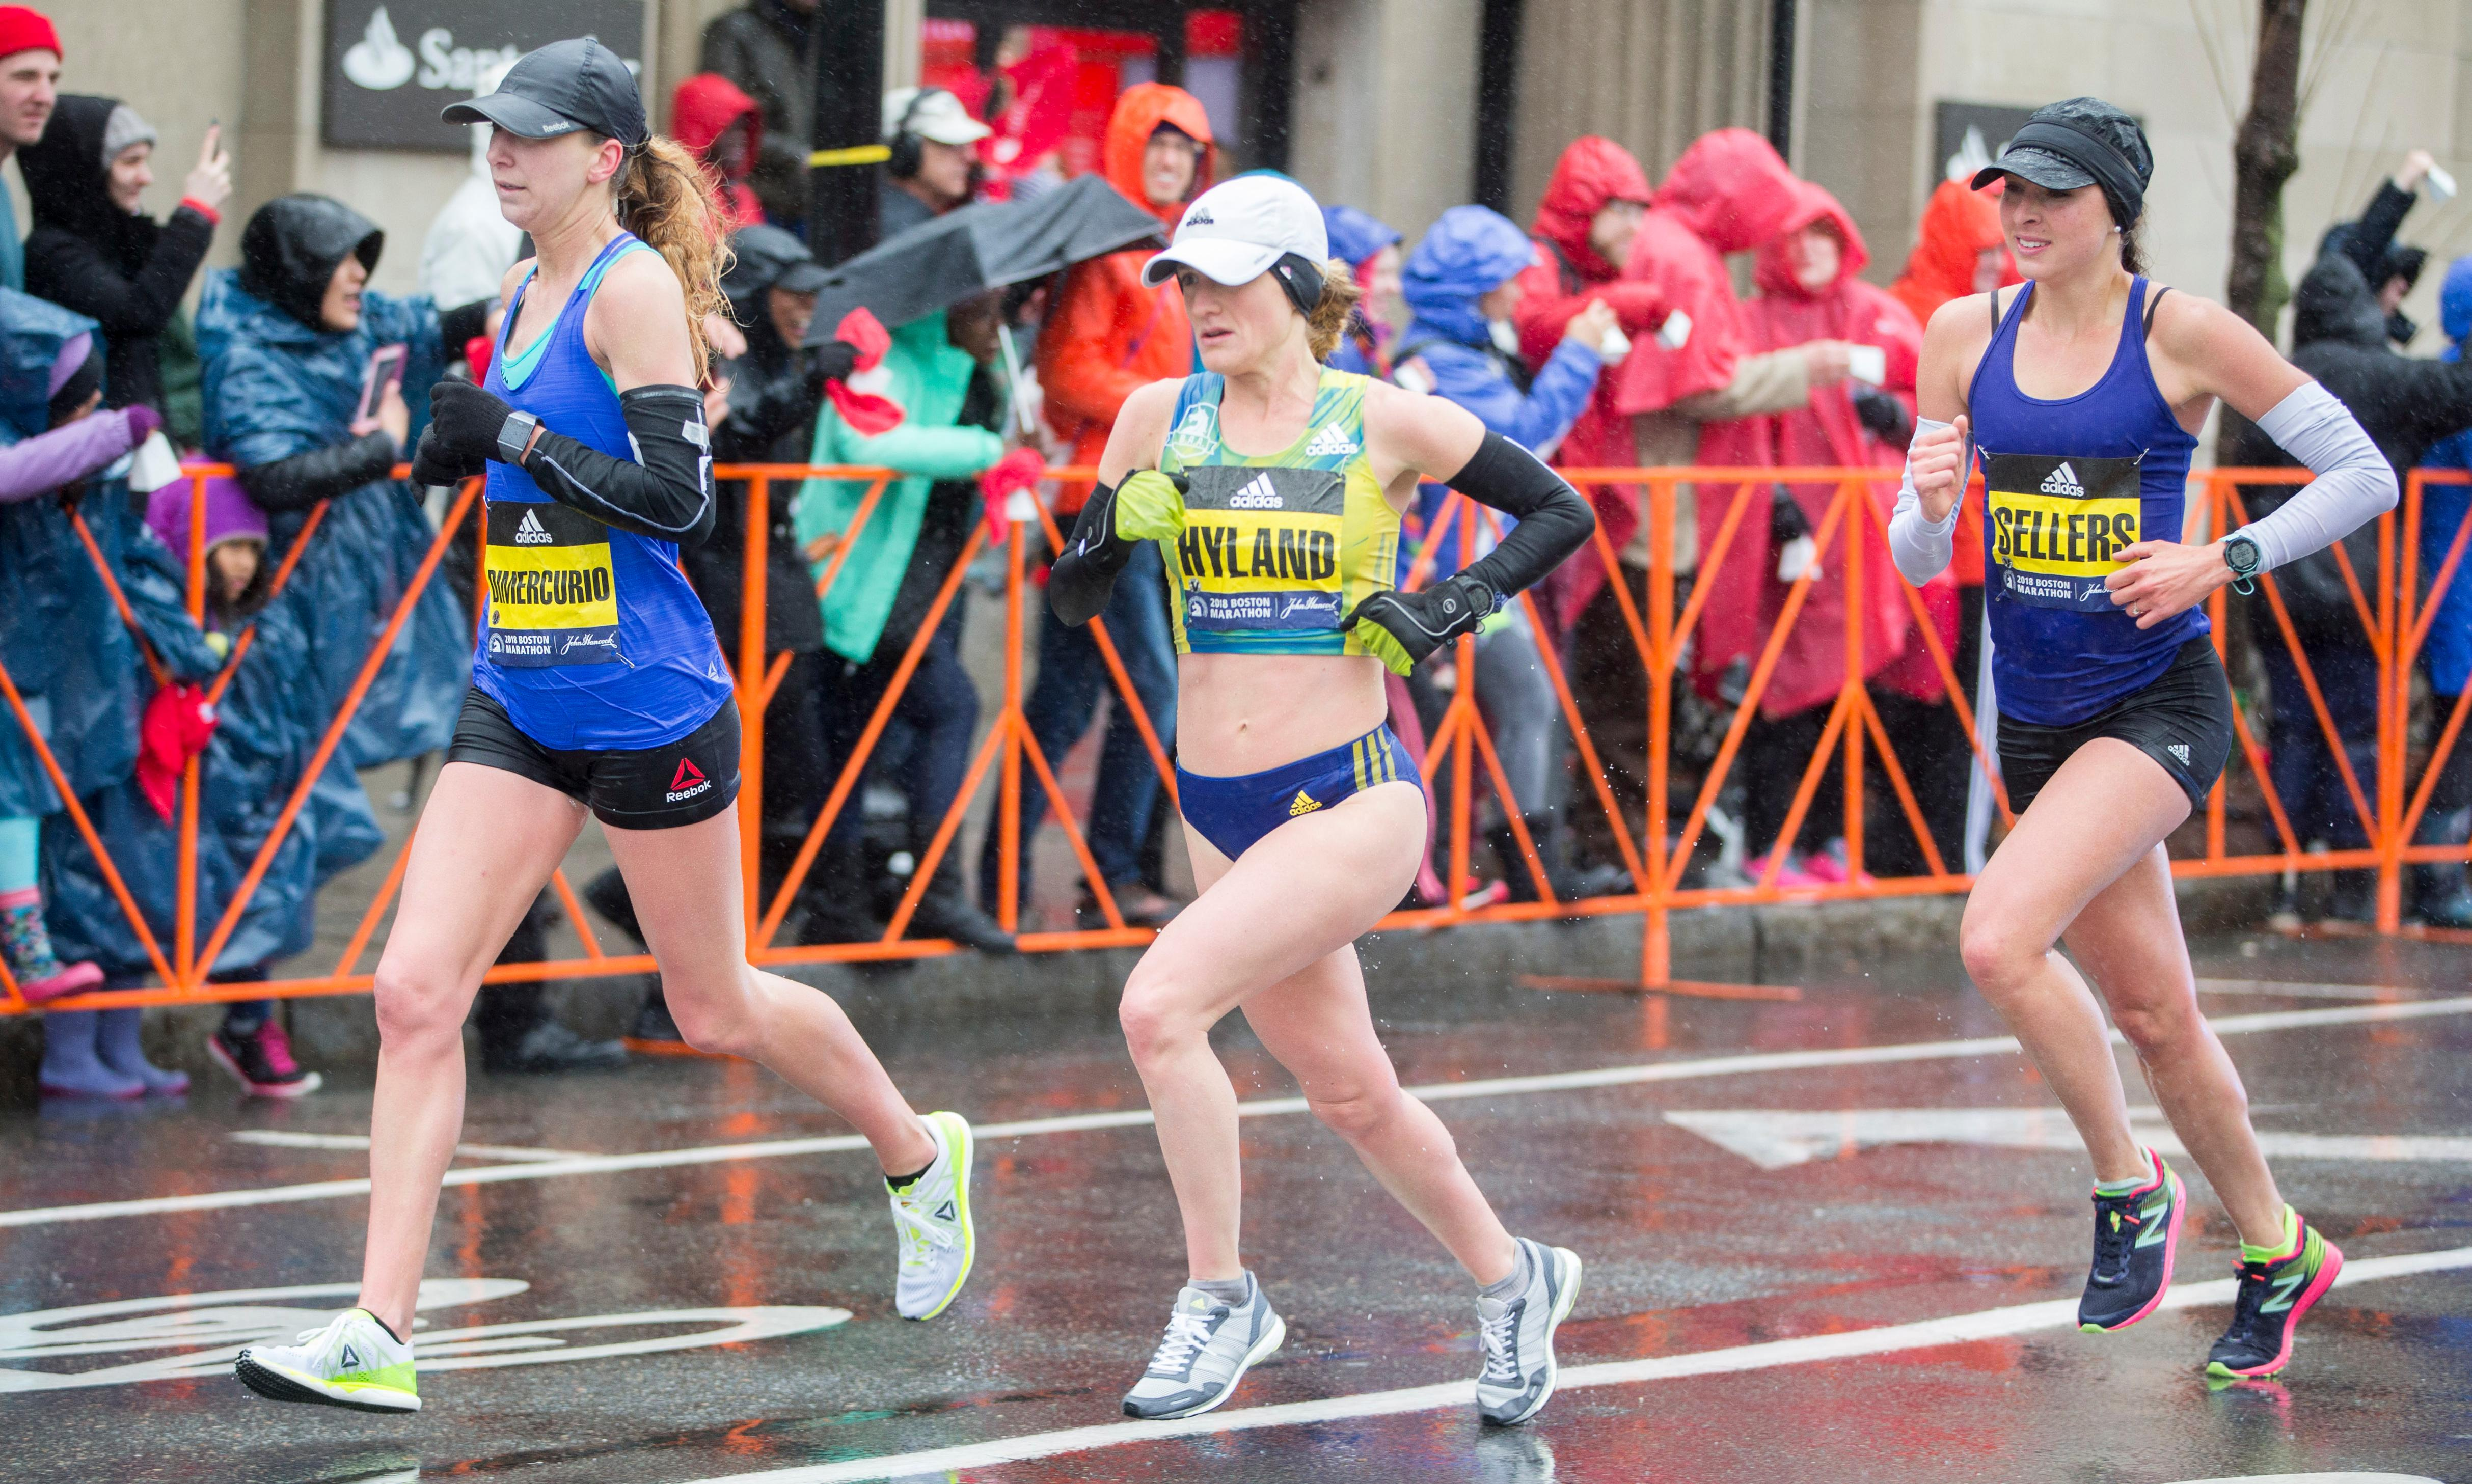 Sarah Sellers: the nurse who stunned the world at the Boston Marathon